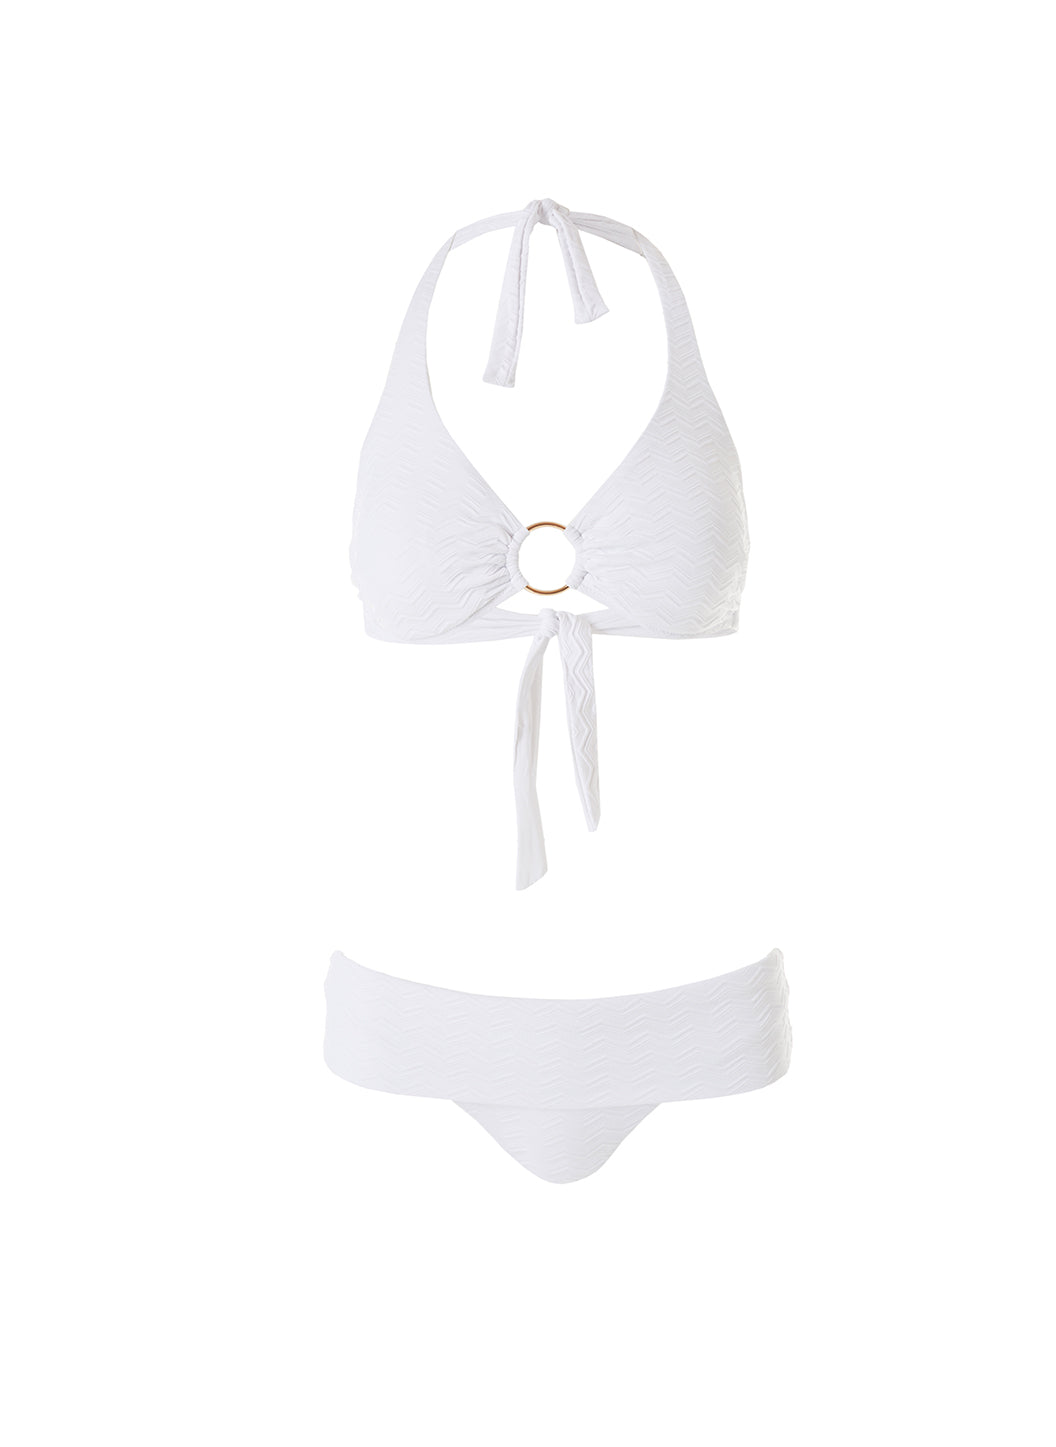 Exclusive Brussels White Zig Zag Halterneck Ring Supportive Bikini - Melissa Odabash Supportive Swimwear D-G